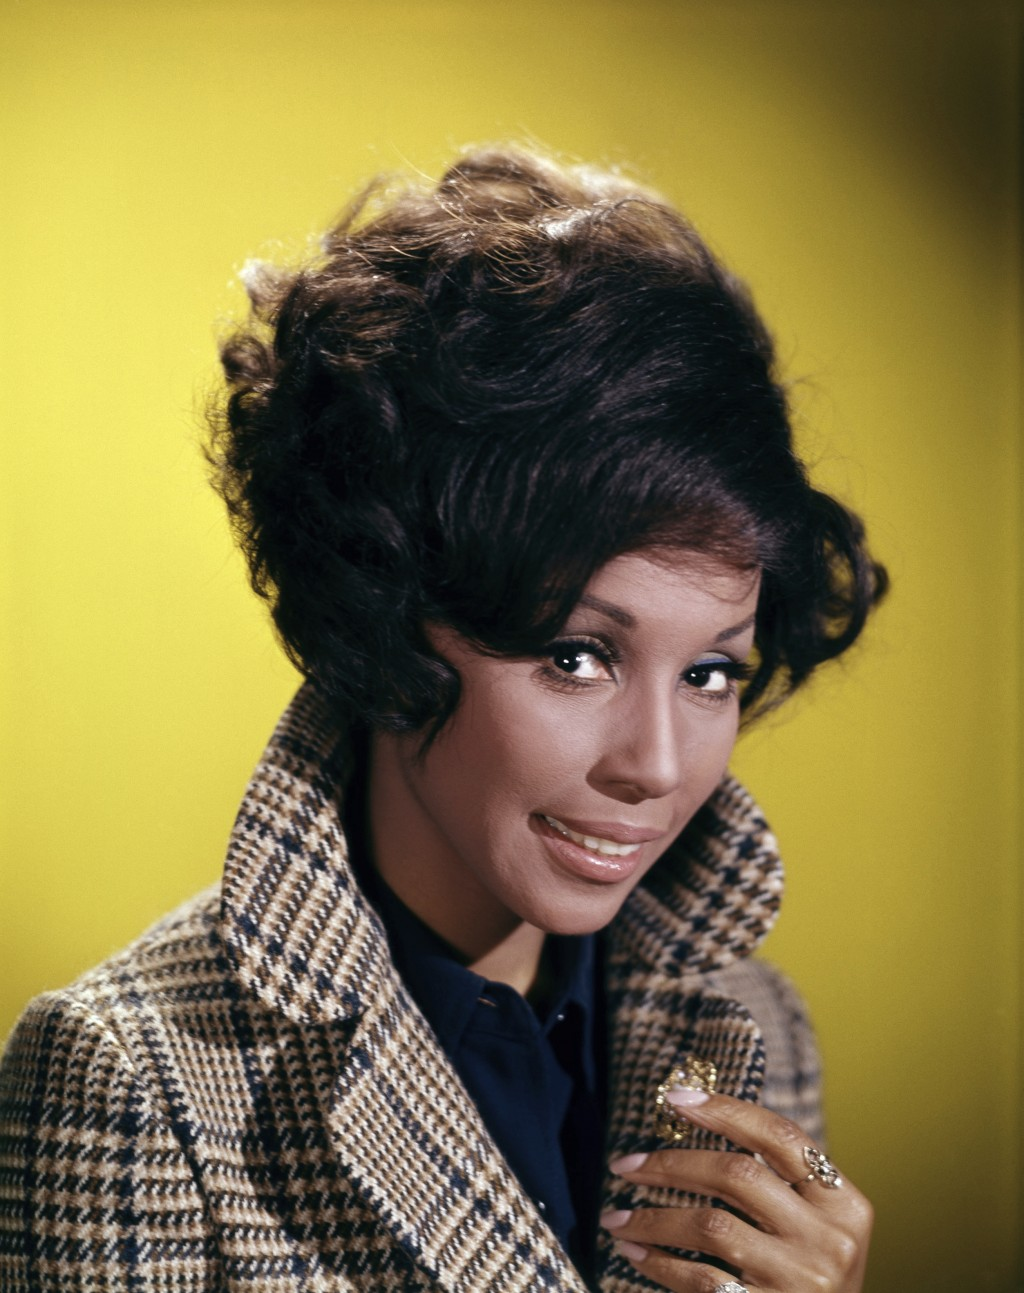 FILE - This 1972 file image shows singer and actress Diahann Carroll. Carroll passed away Friday, Oct. 4, 2019  at her home in Los Angeles after a lon